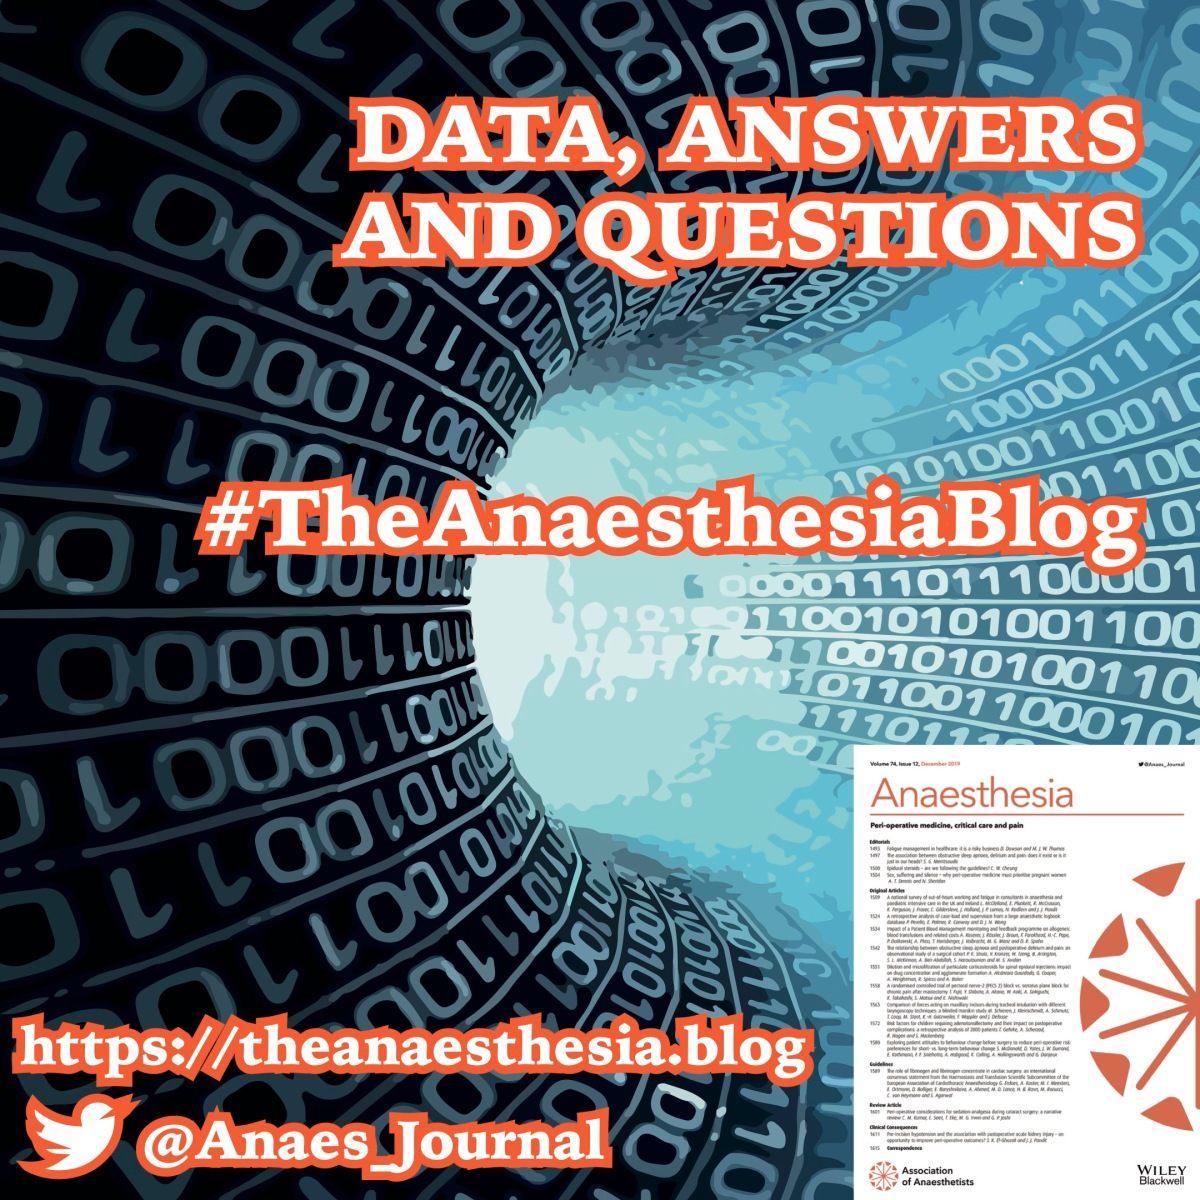 Data, answers andquestions